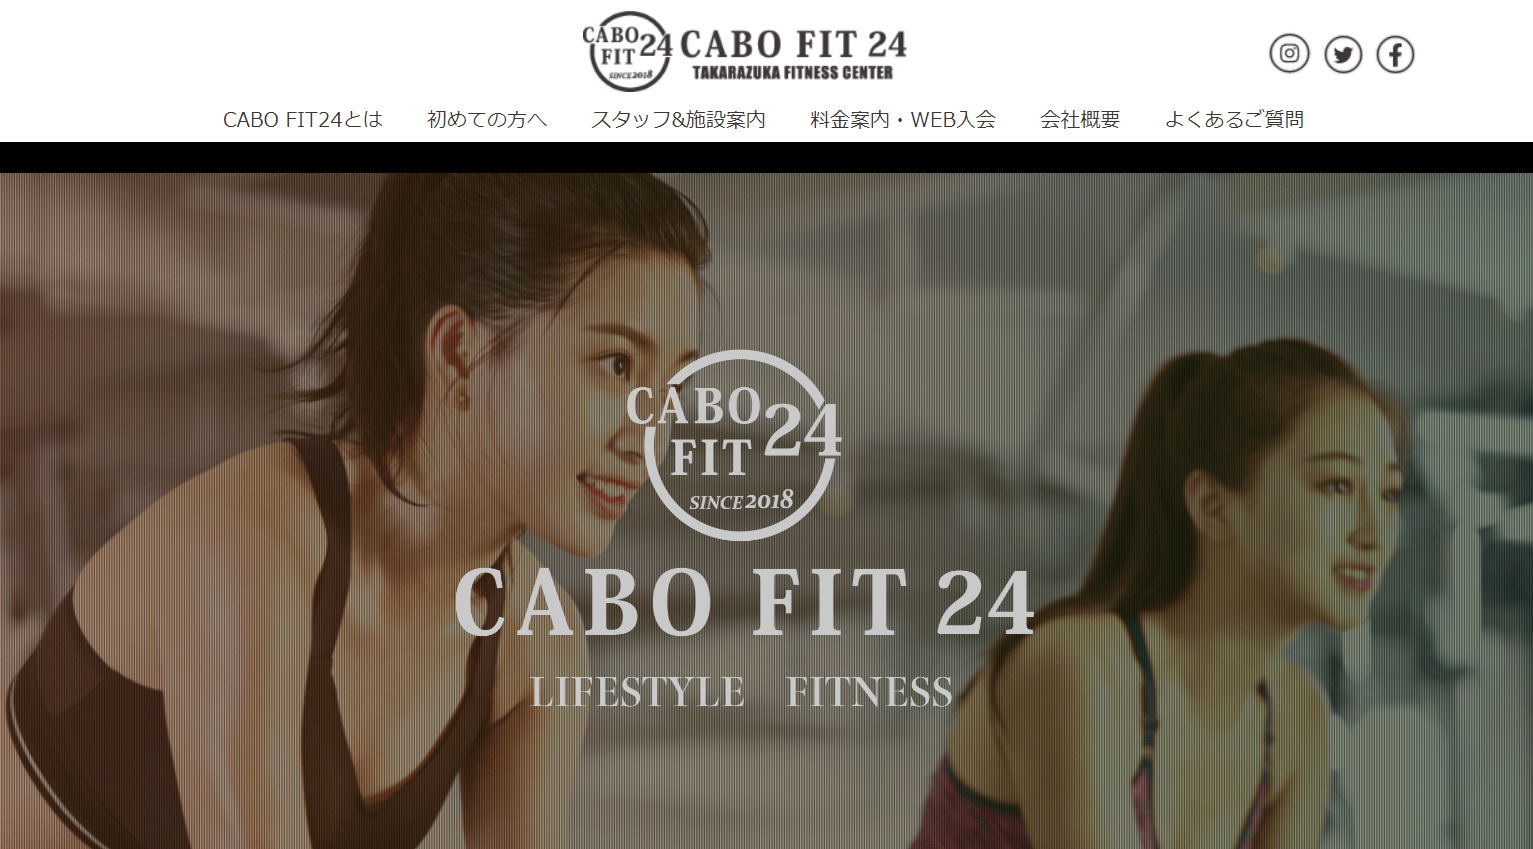 CABO FIT(カボフィット)24宝塚